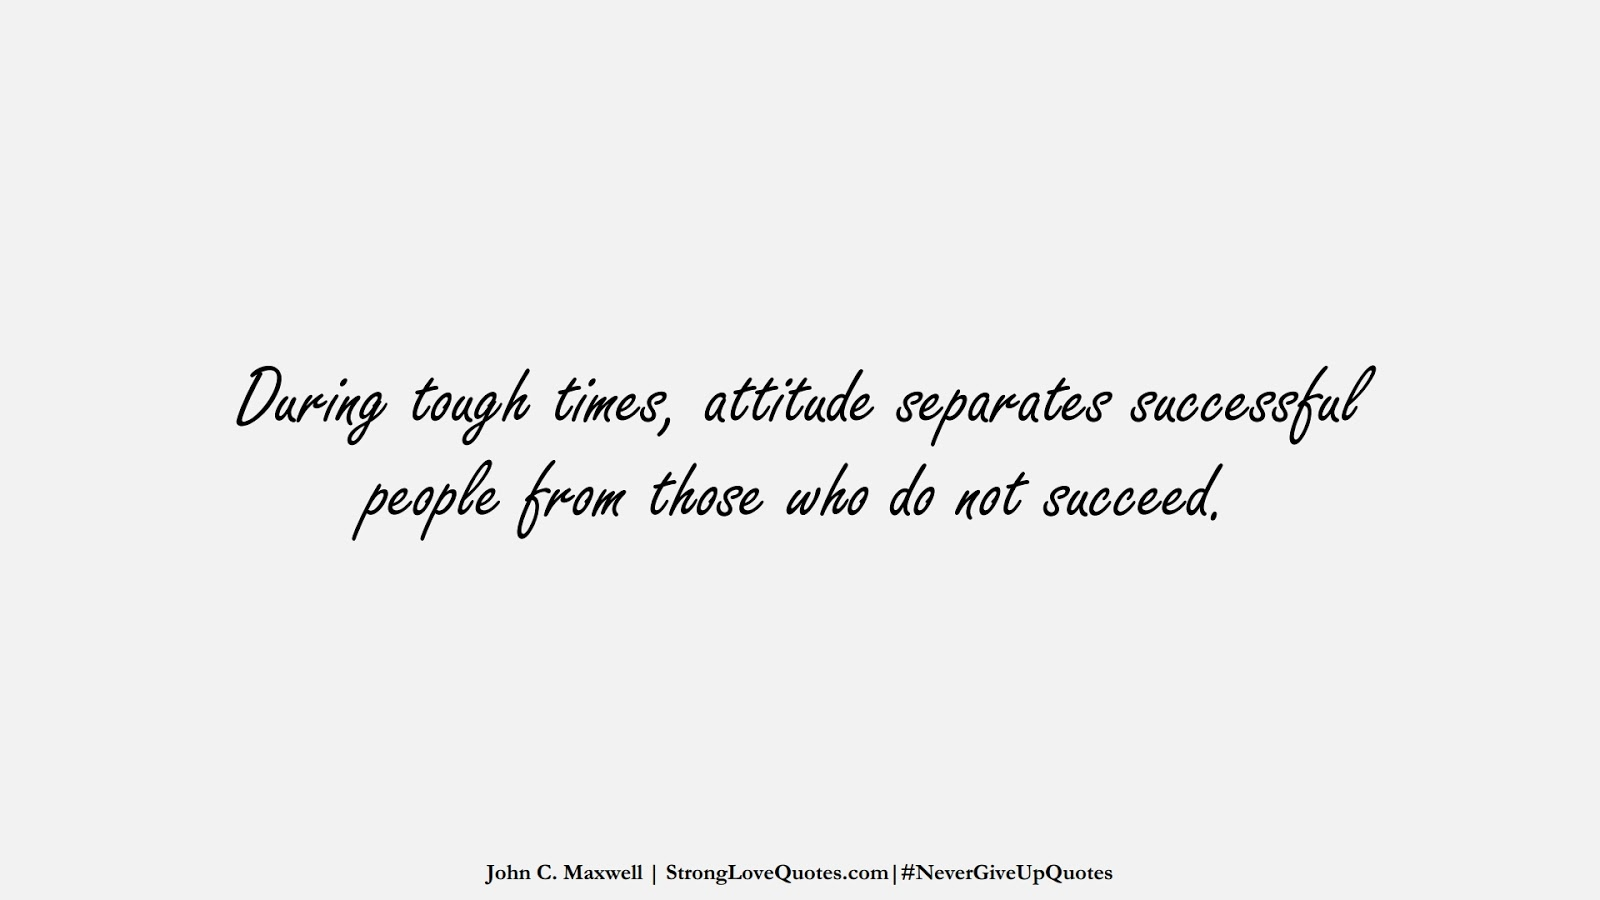 During tough times, attitude separates successful people from those who do not succeed. (John C. Maxwell);  #NeverGiveUpQuotes